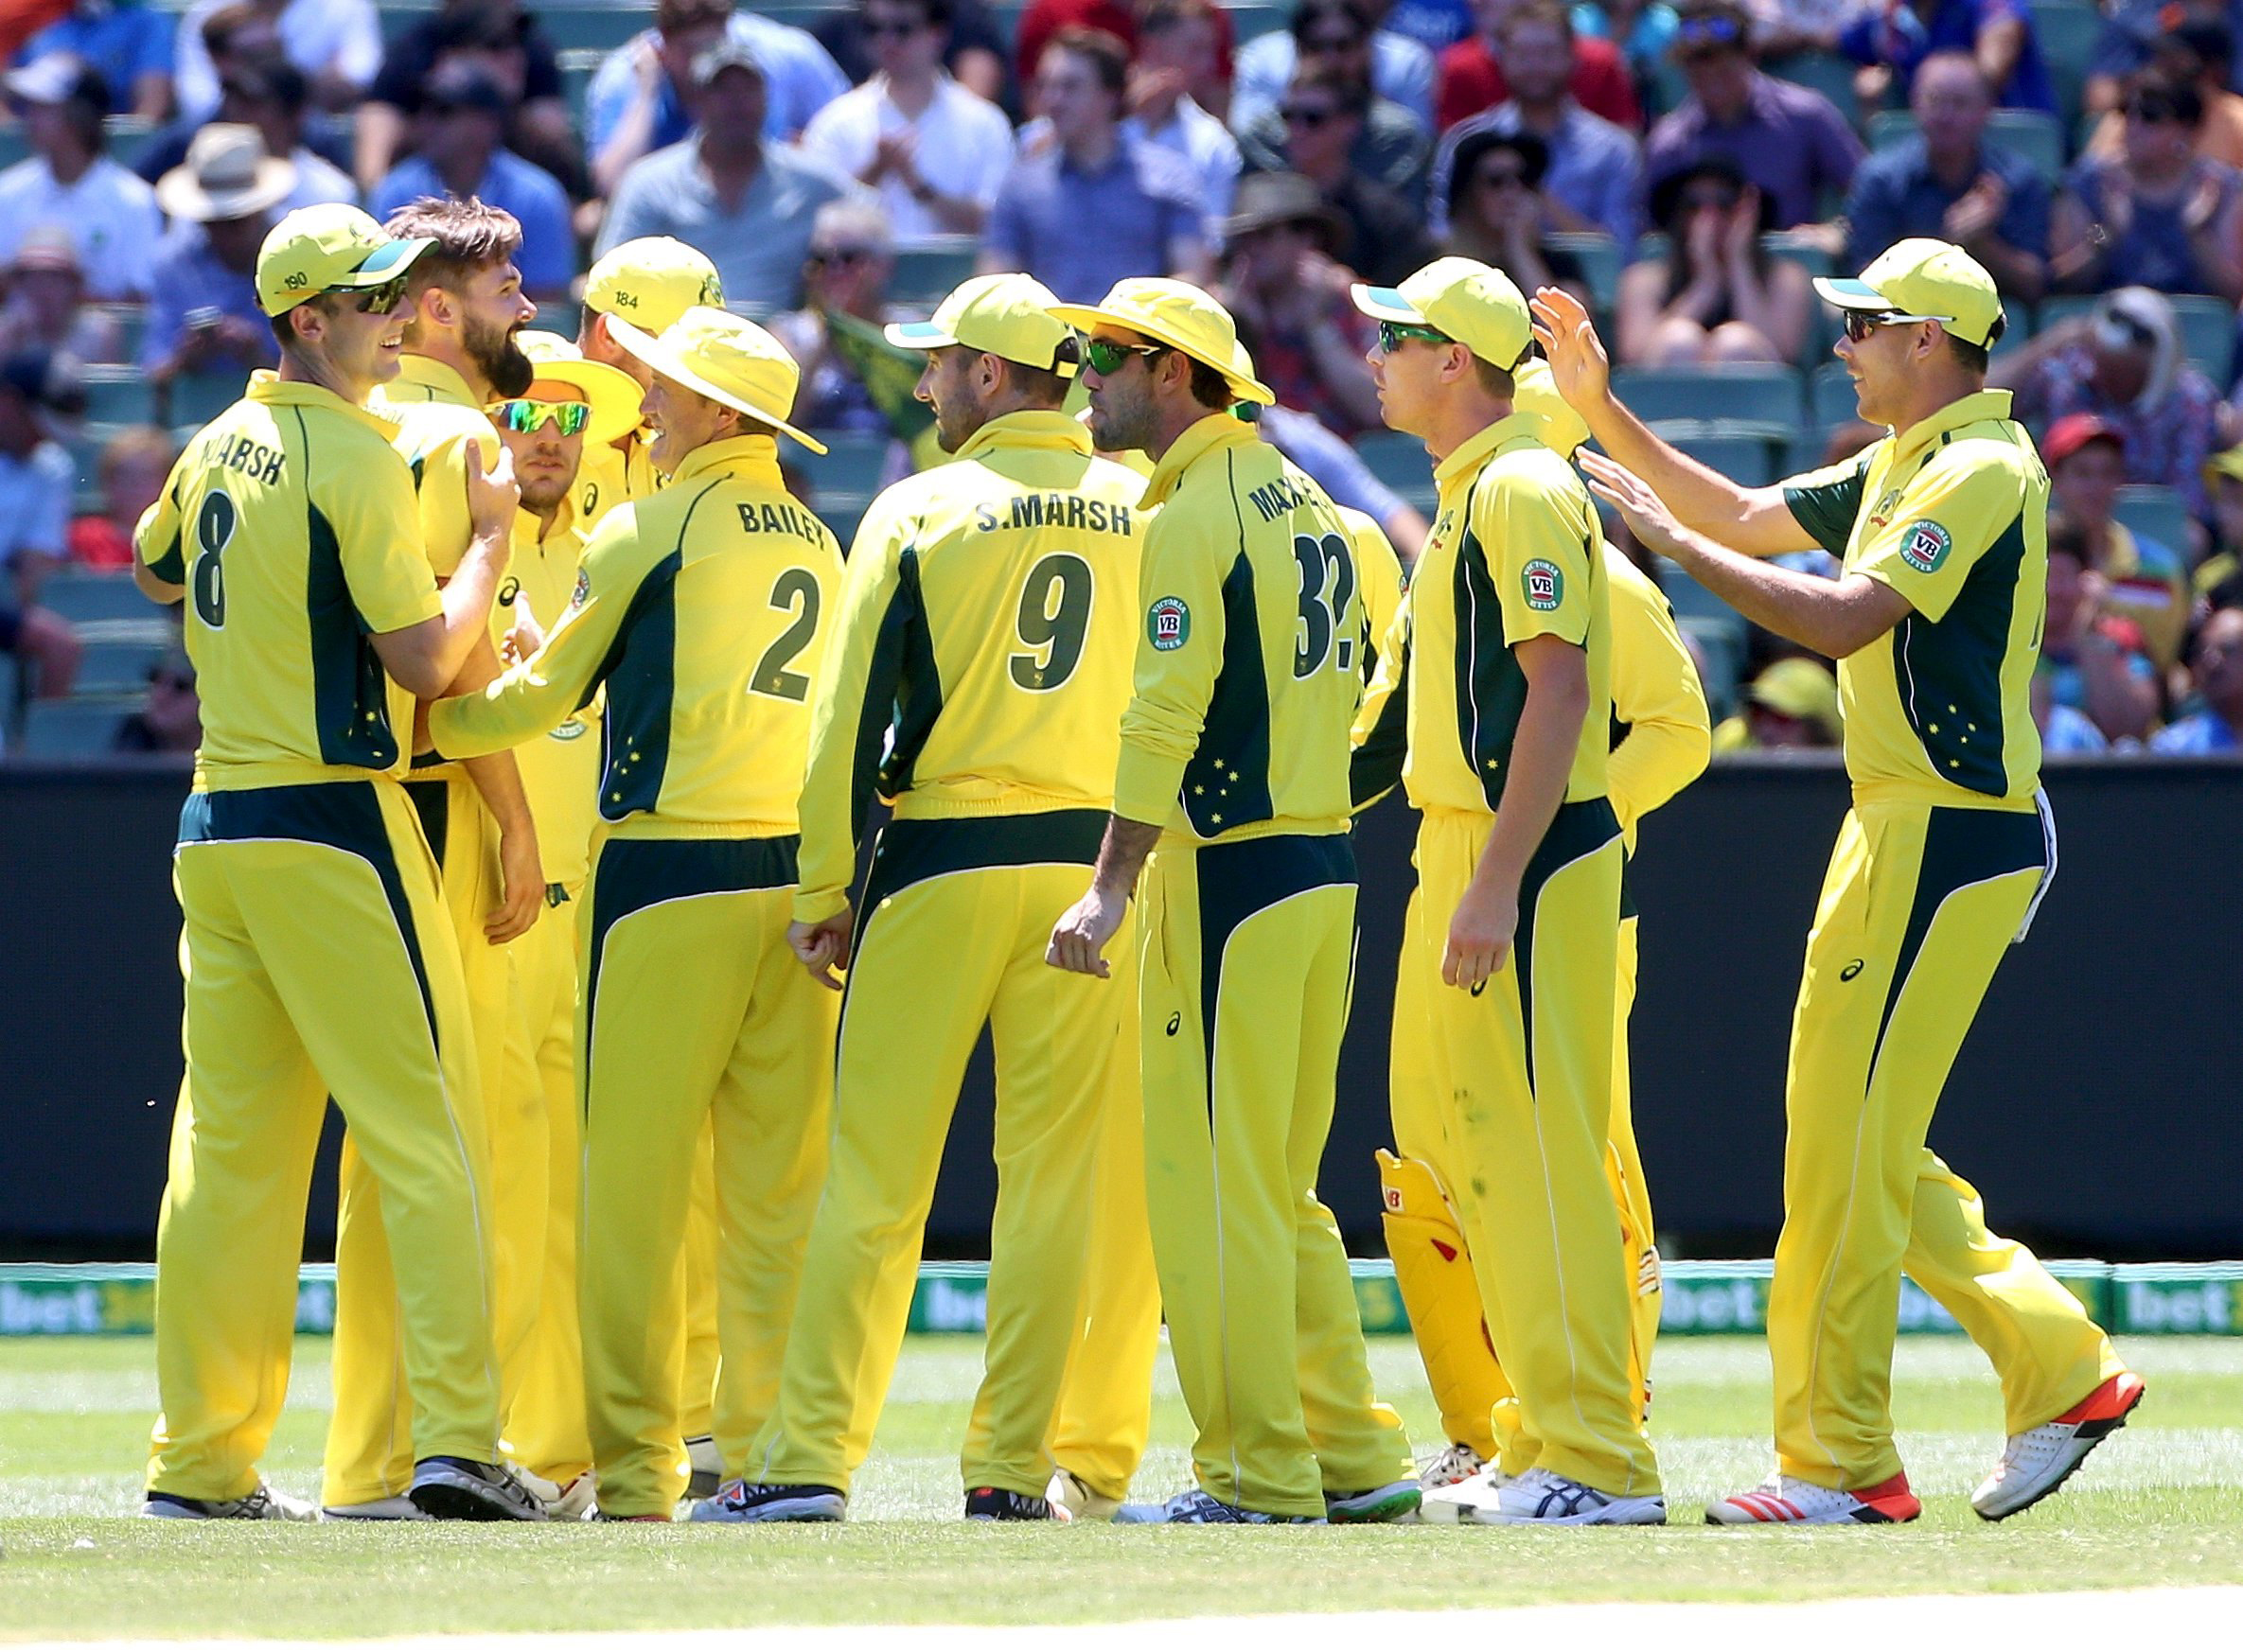 Australia's Kane Richardson (2nd L) is congratulated by team mates after taking the wicket of India's Rohit Sharma during their One Day cricket match at the Melbourne Cricket Ground January 17, 2016. Photo: Reuters